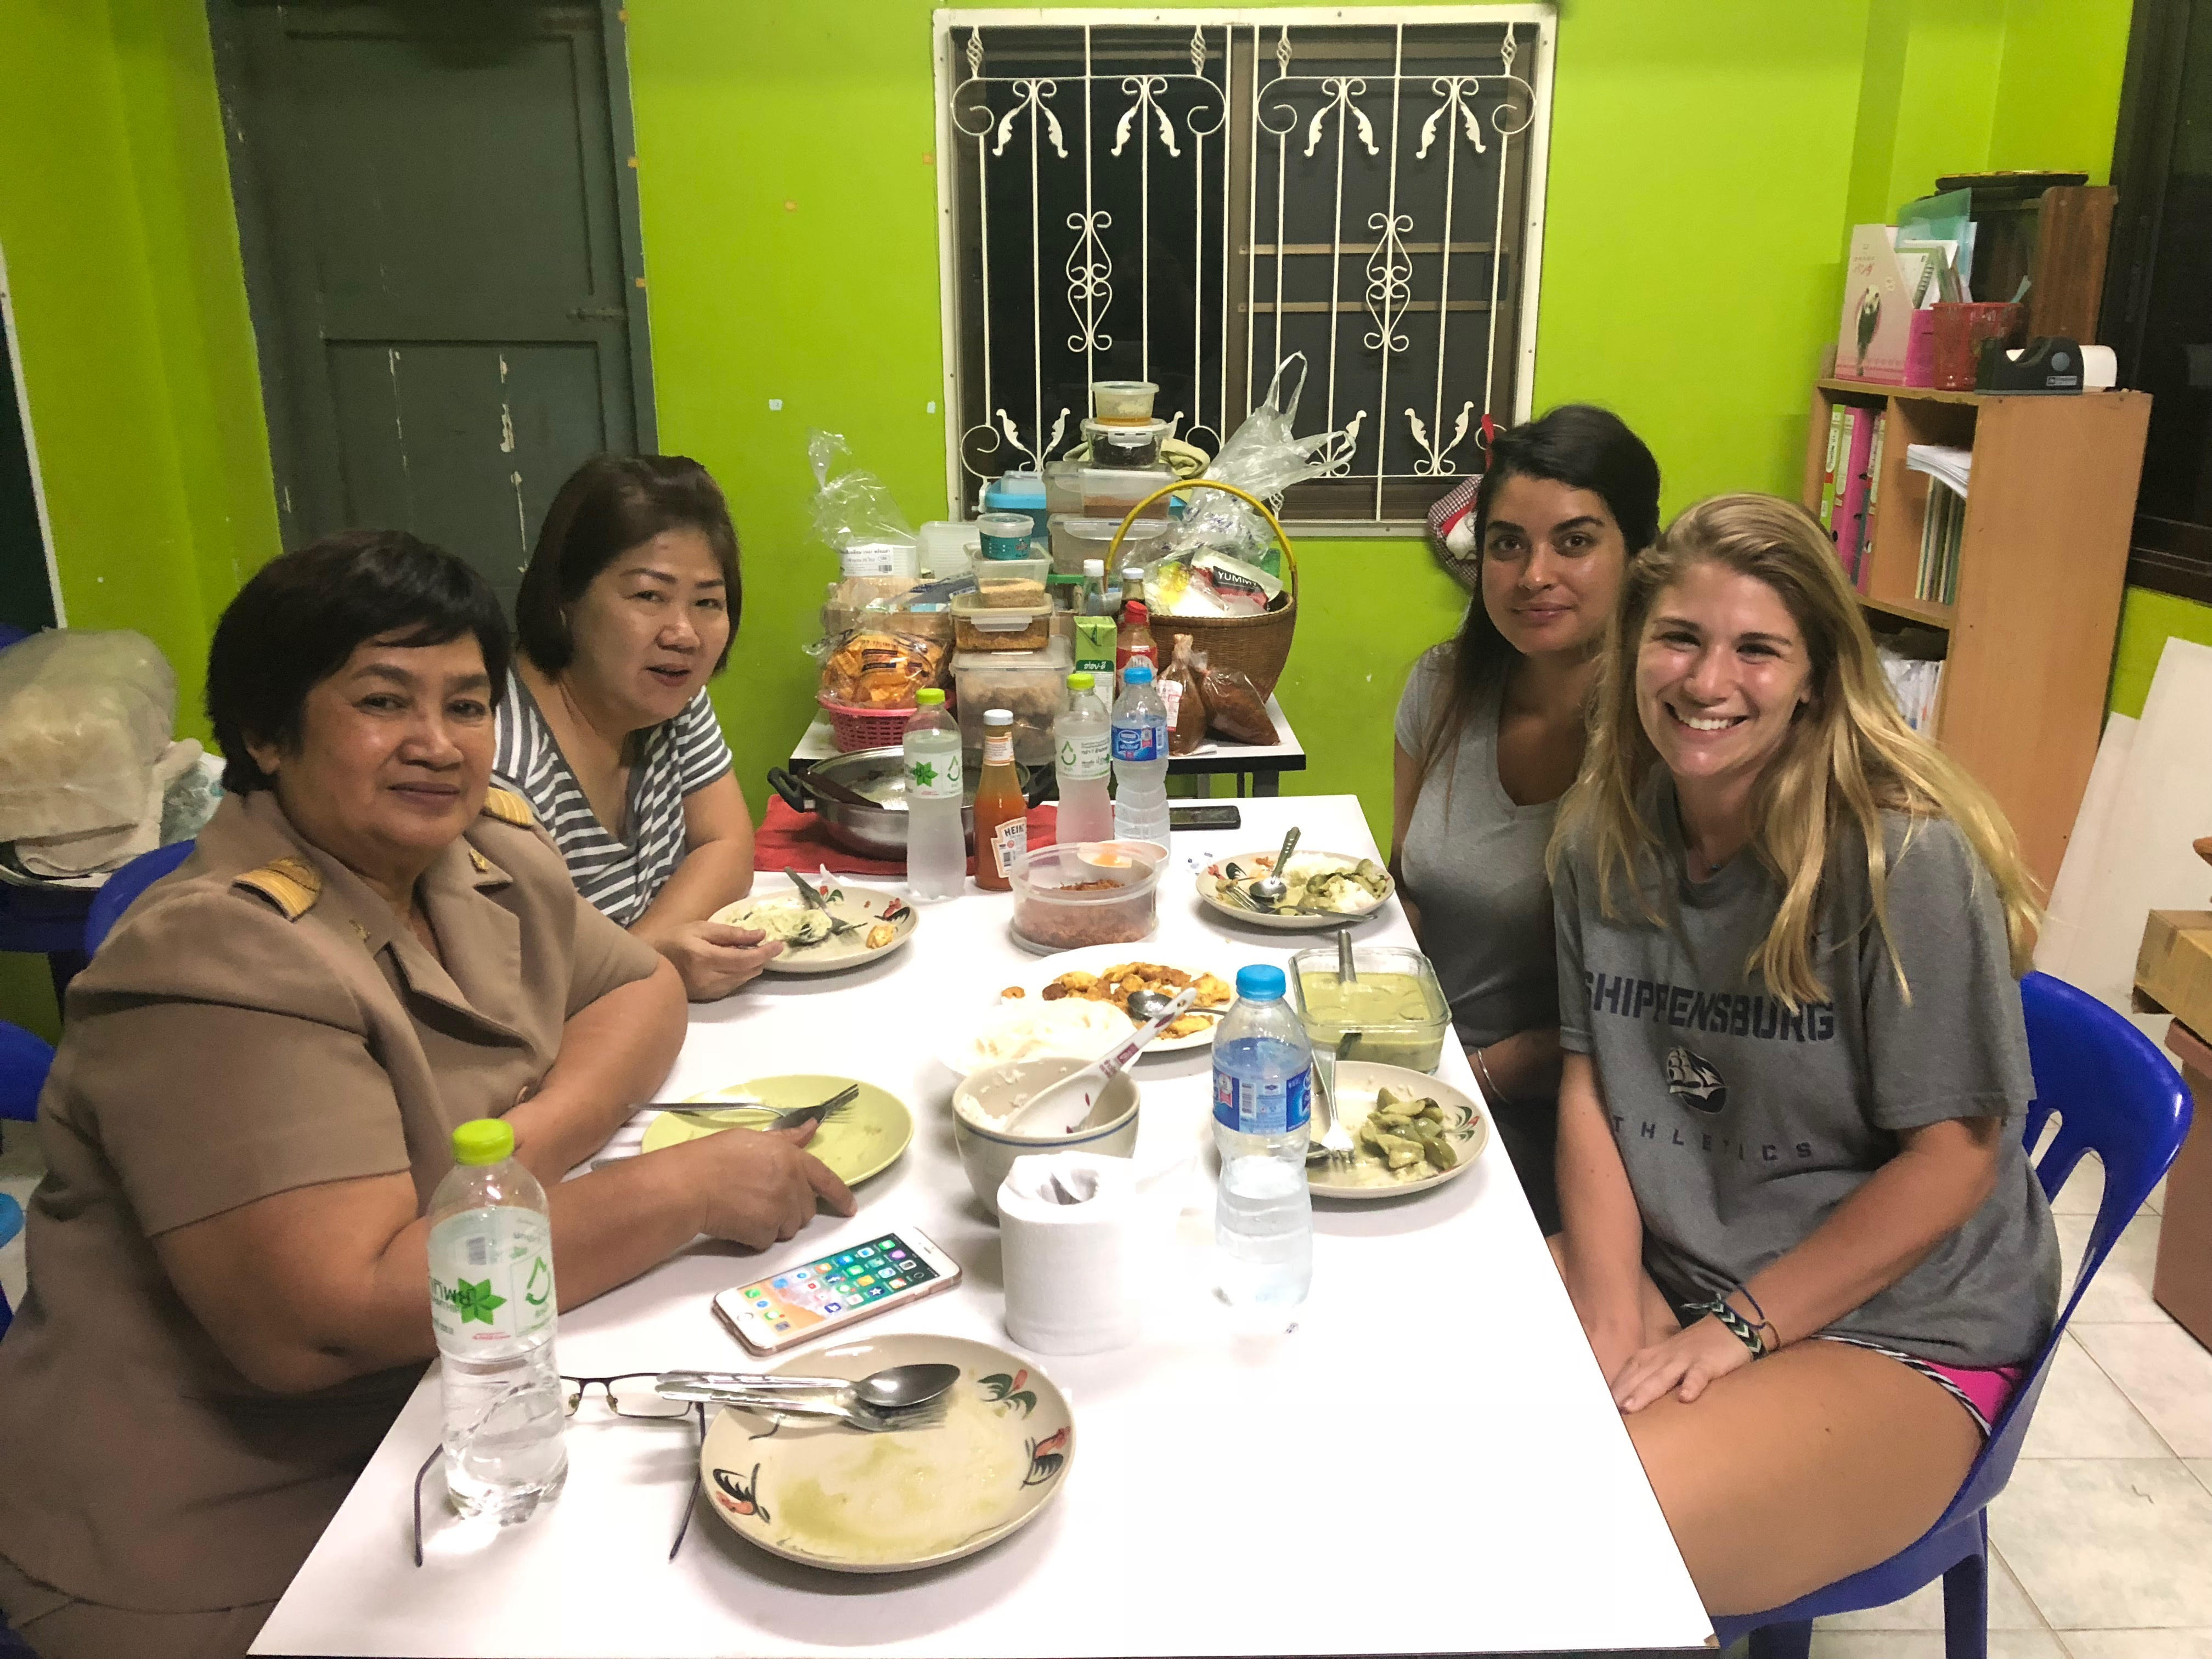 Alyssa having a meal with her host family